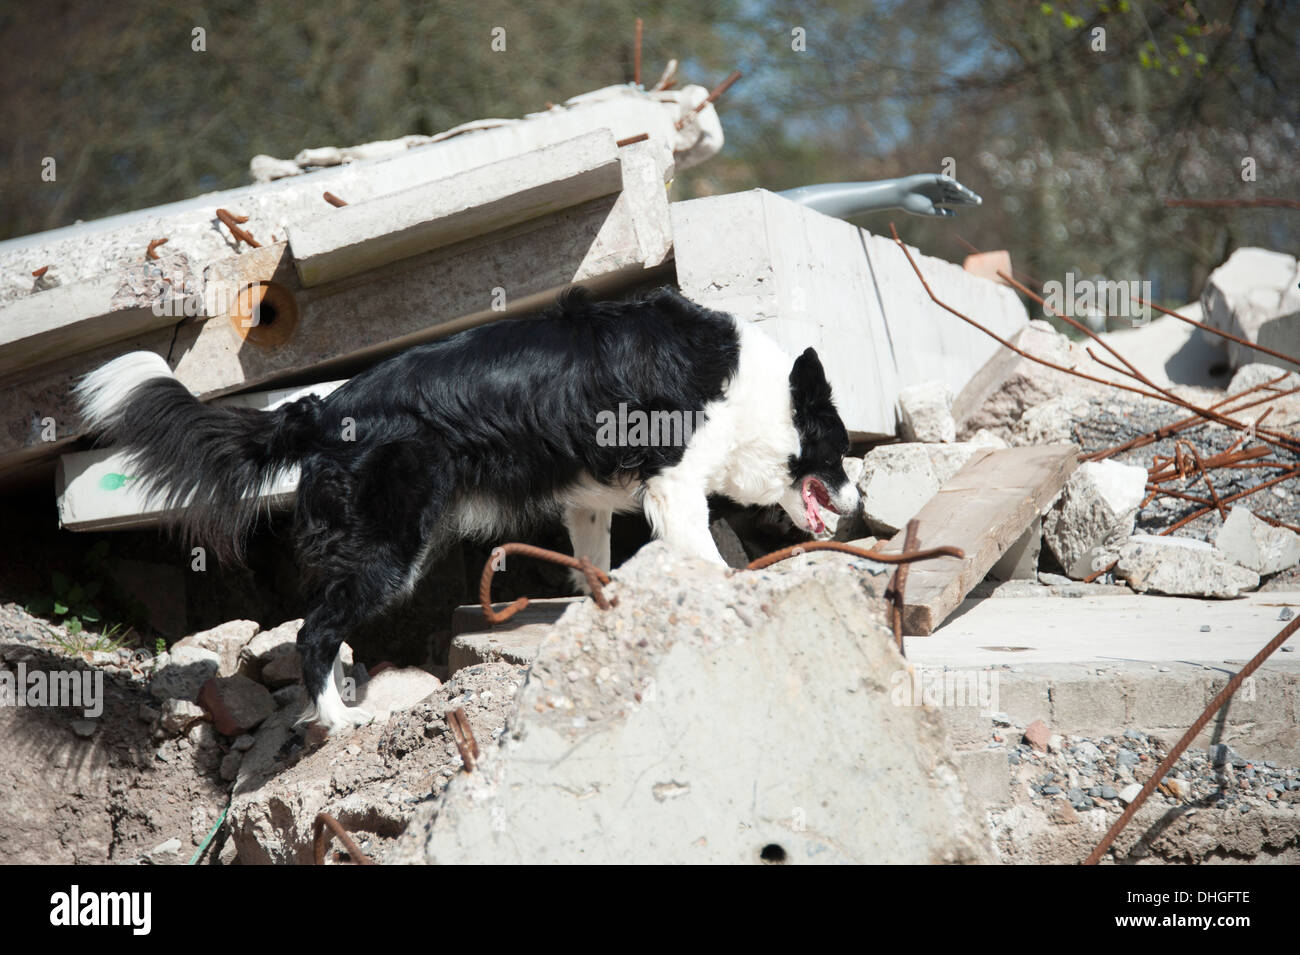 Fire & Rescue USAR Canine Dog sniffer search - Stock Image